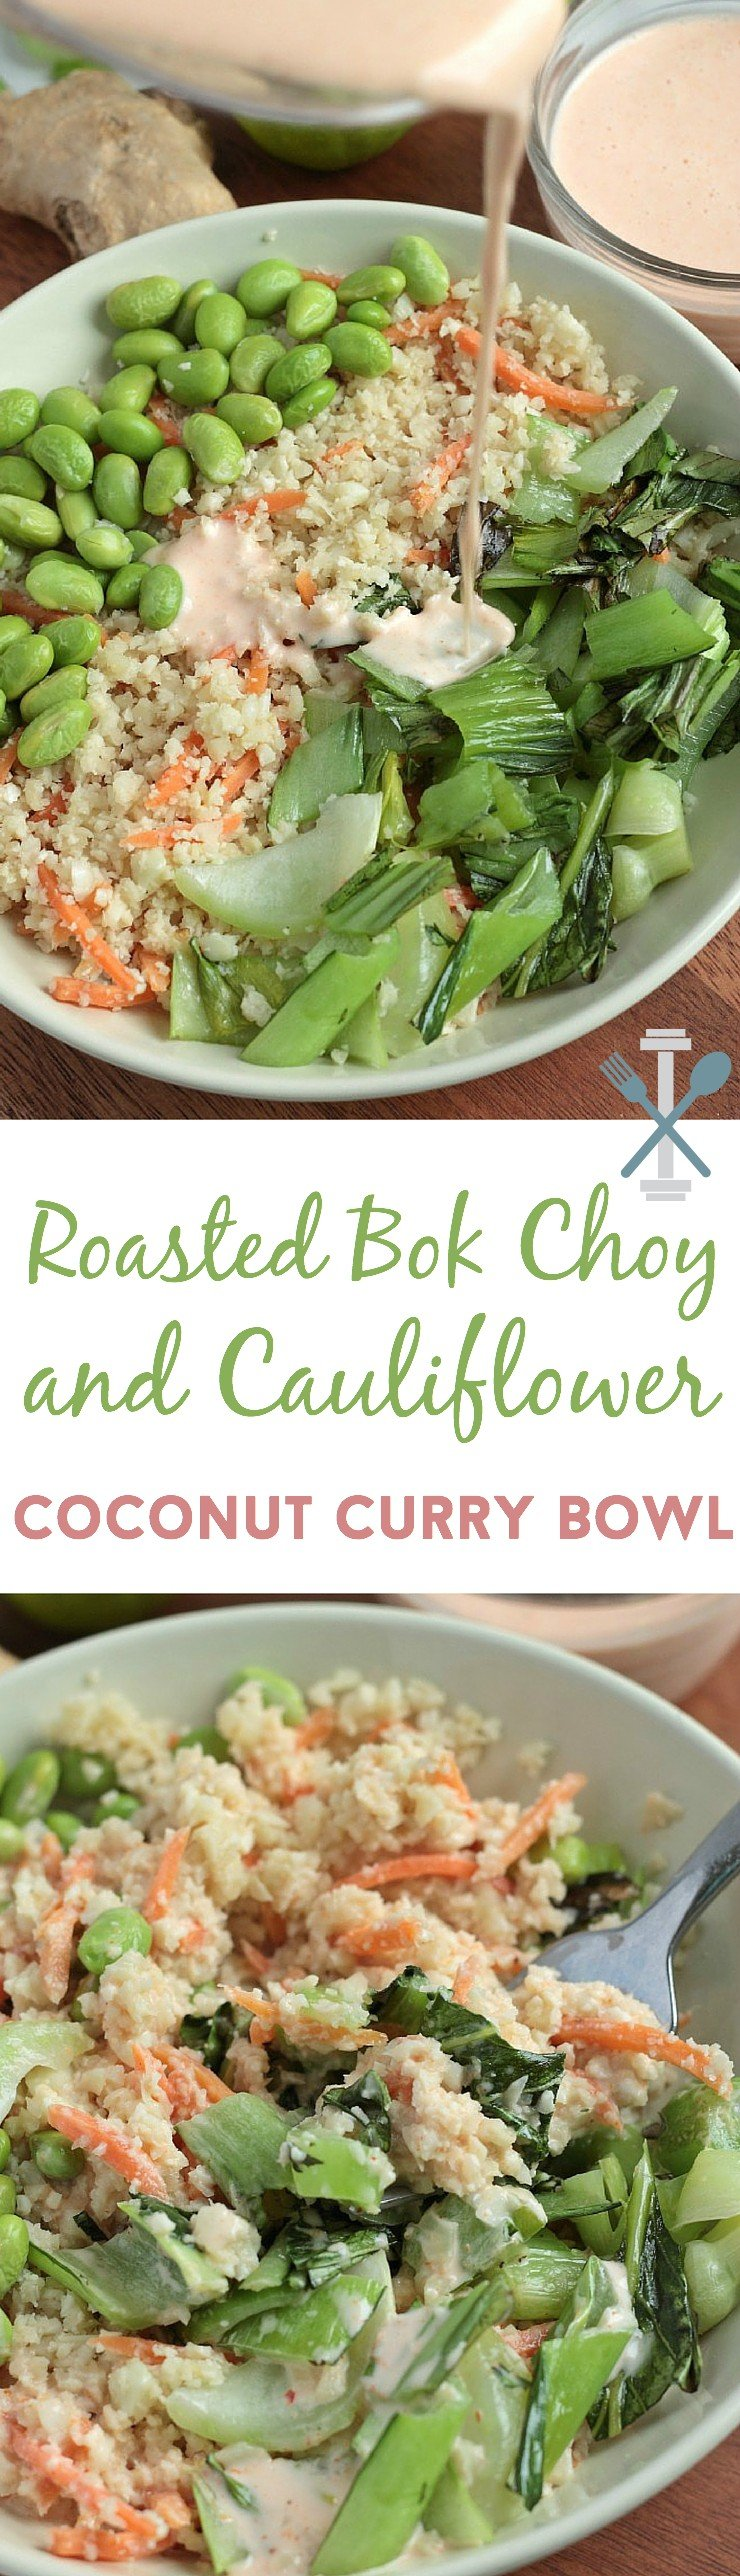 This bok choy, cauliflower rice, and edamame meal with coconut curry is SO tasty! Vegan and can be easily made paleo too!